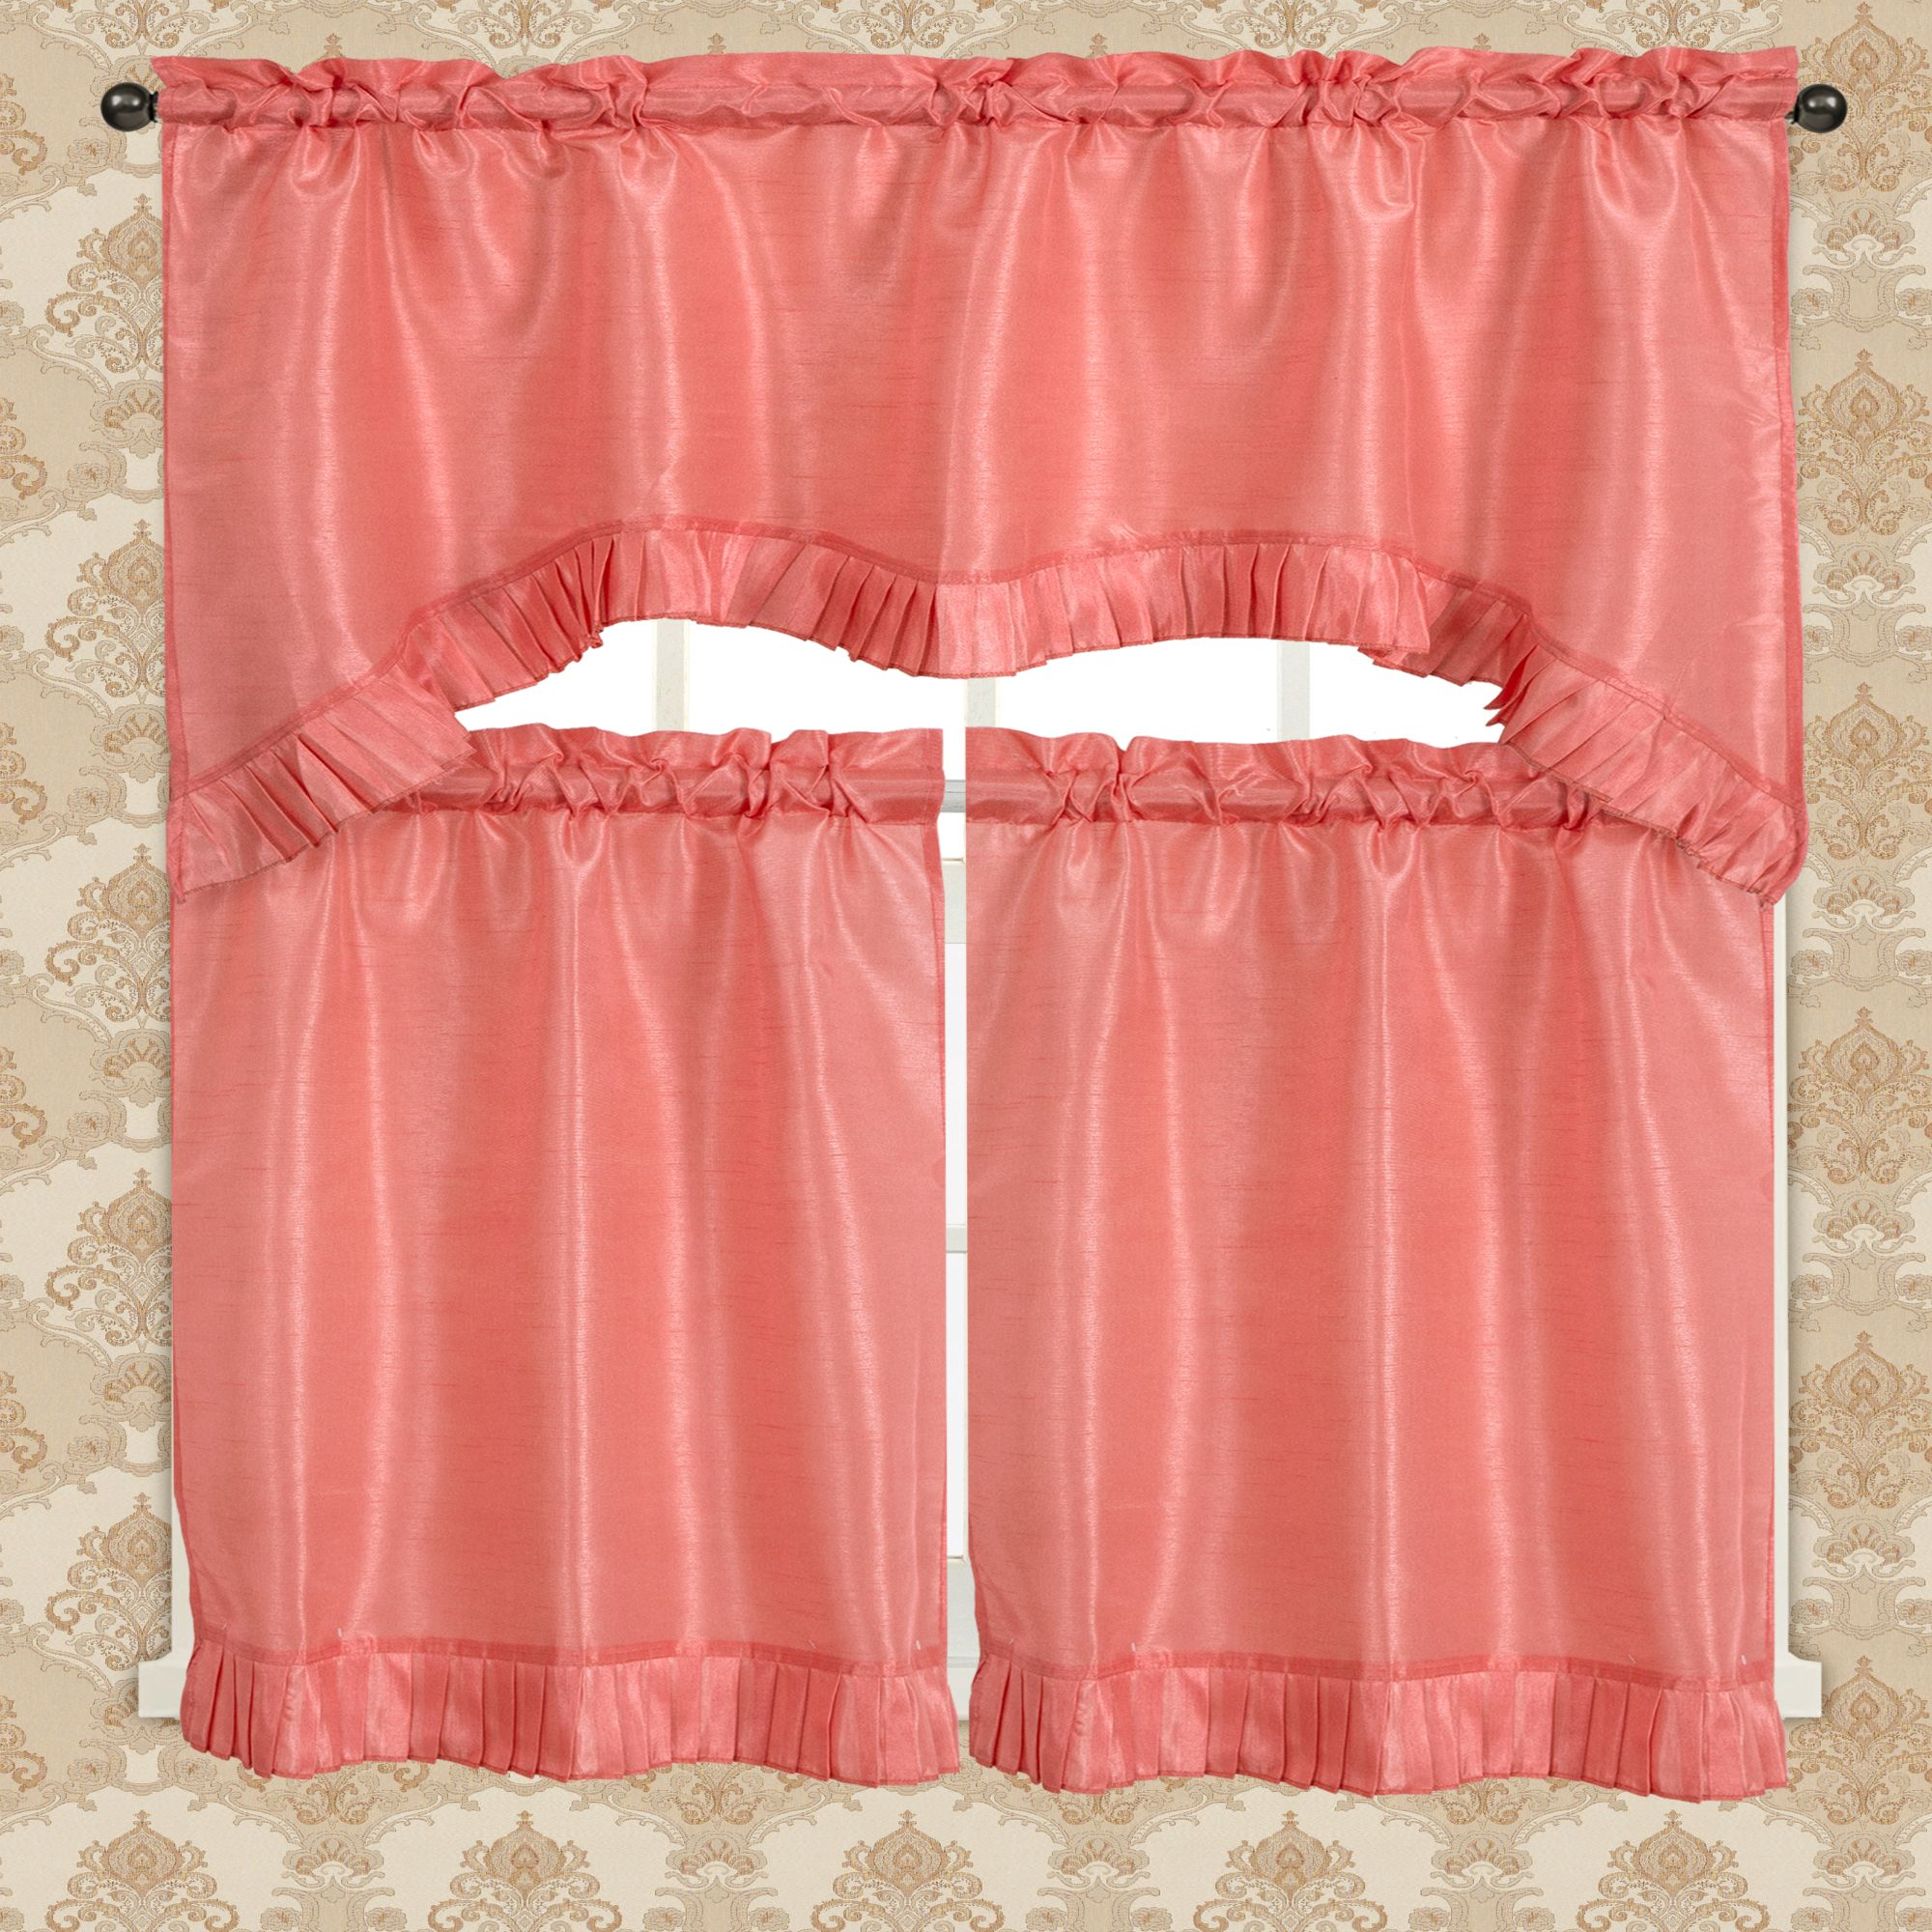 Bermuda Ruffle Kitchen Curtain Tier Set, Coral